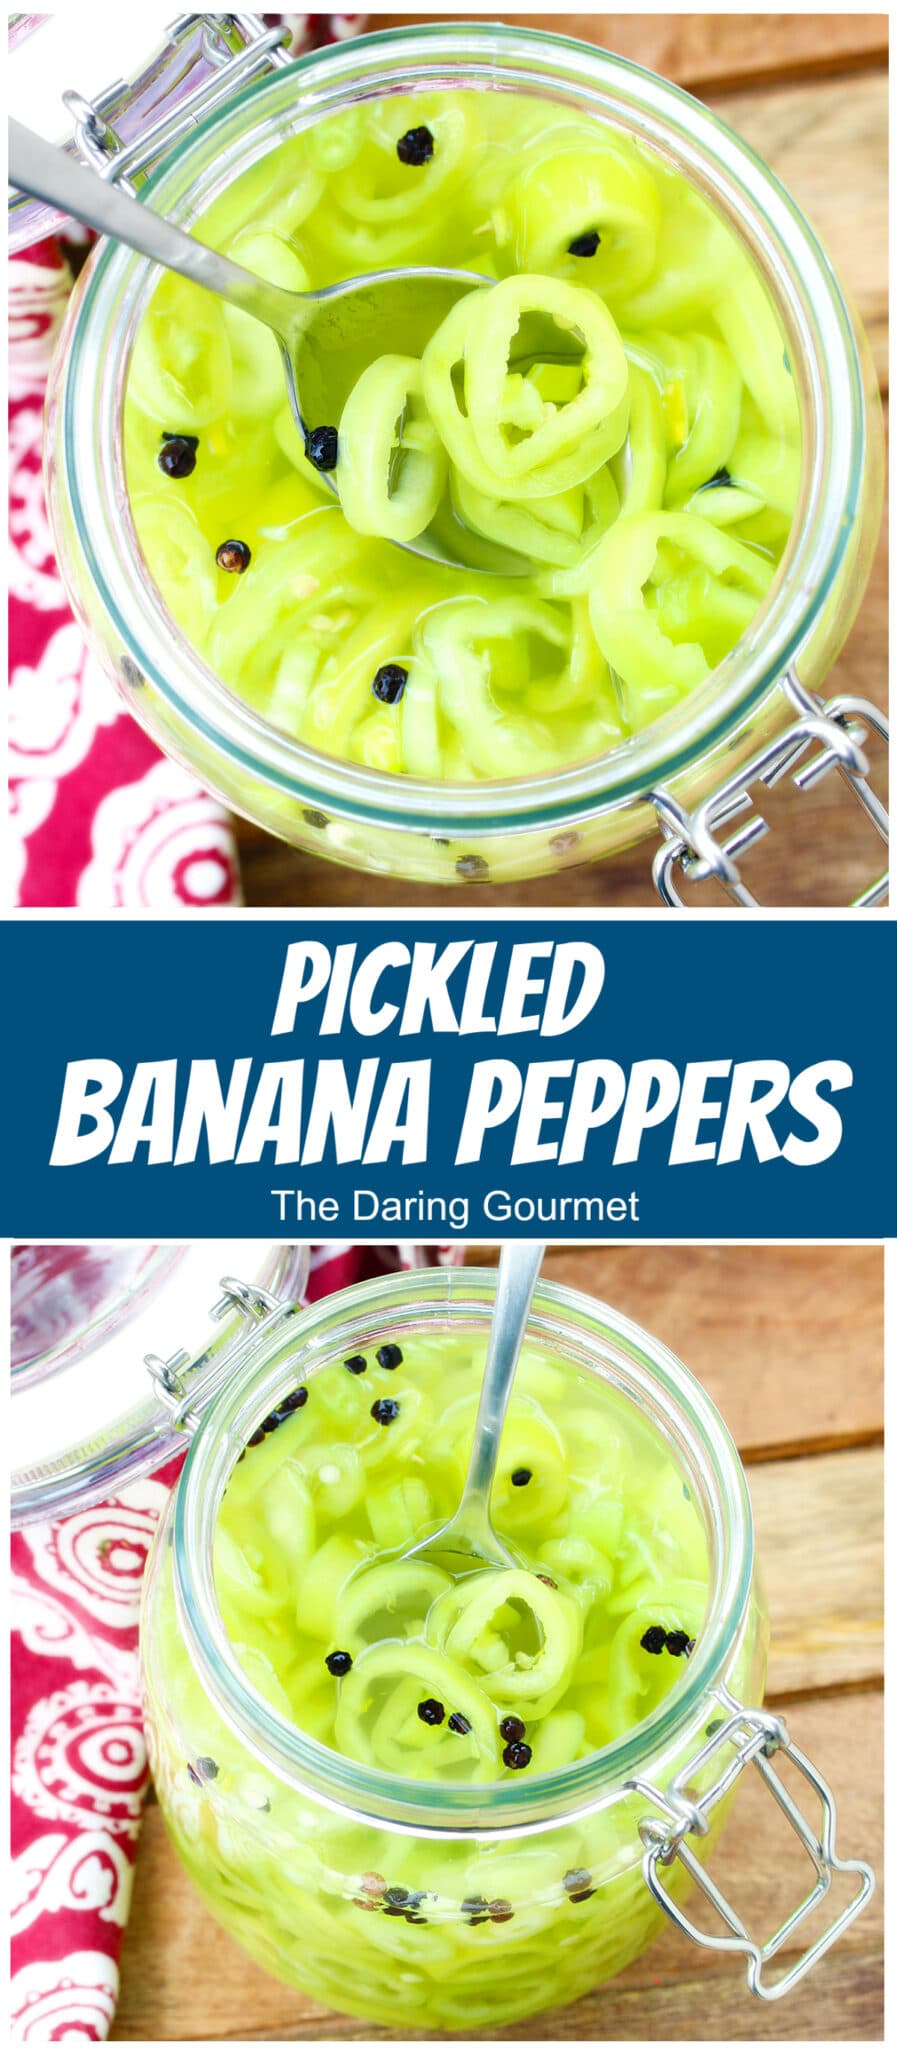 pickled banana peppers recipe pepperoncini canning preserving